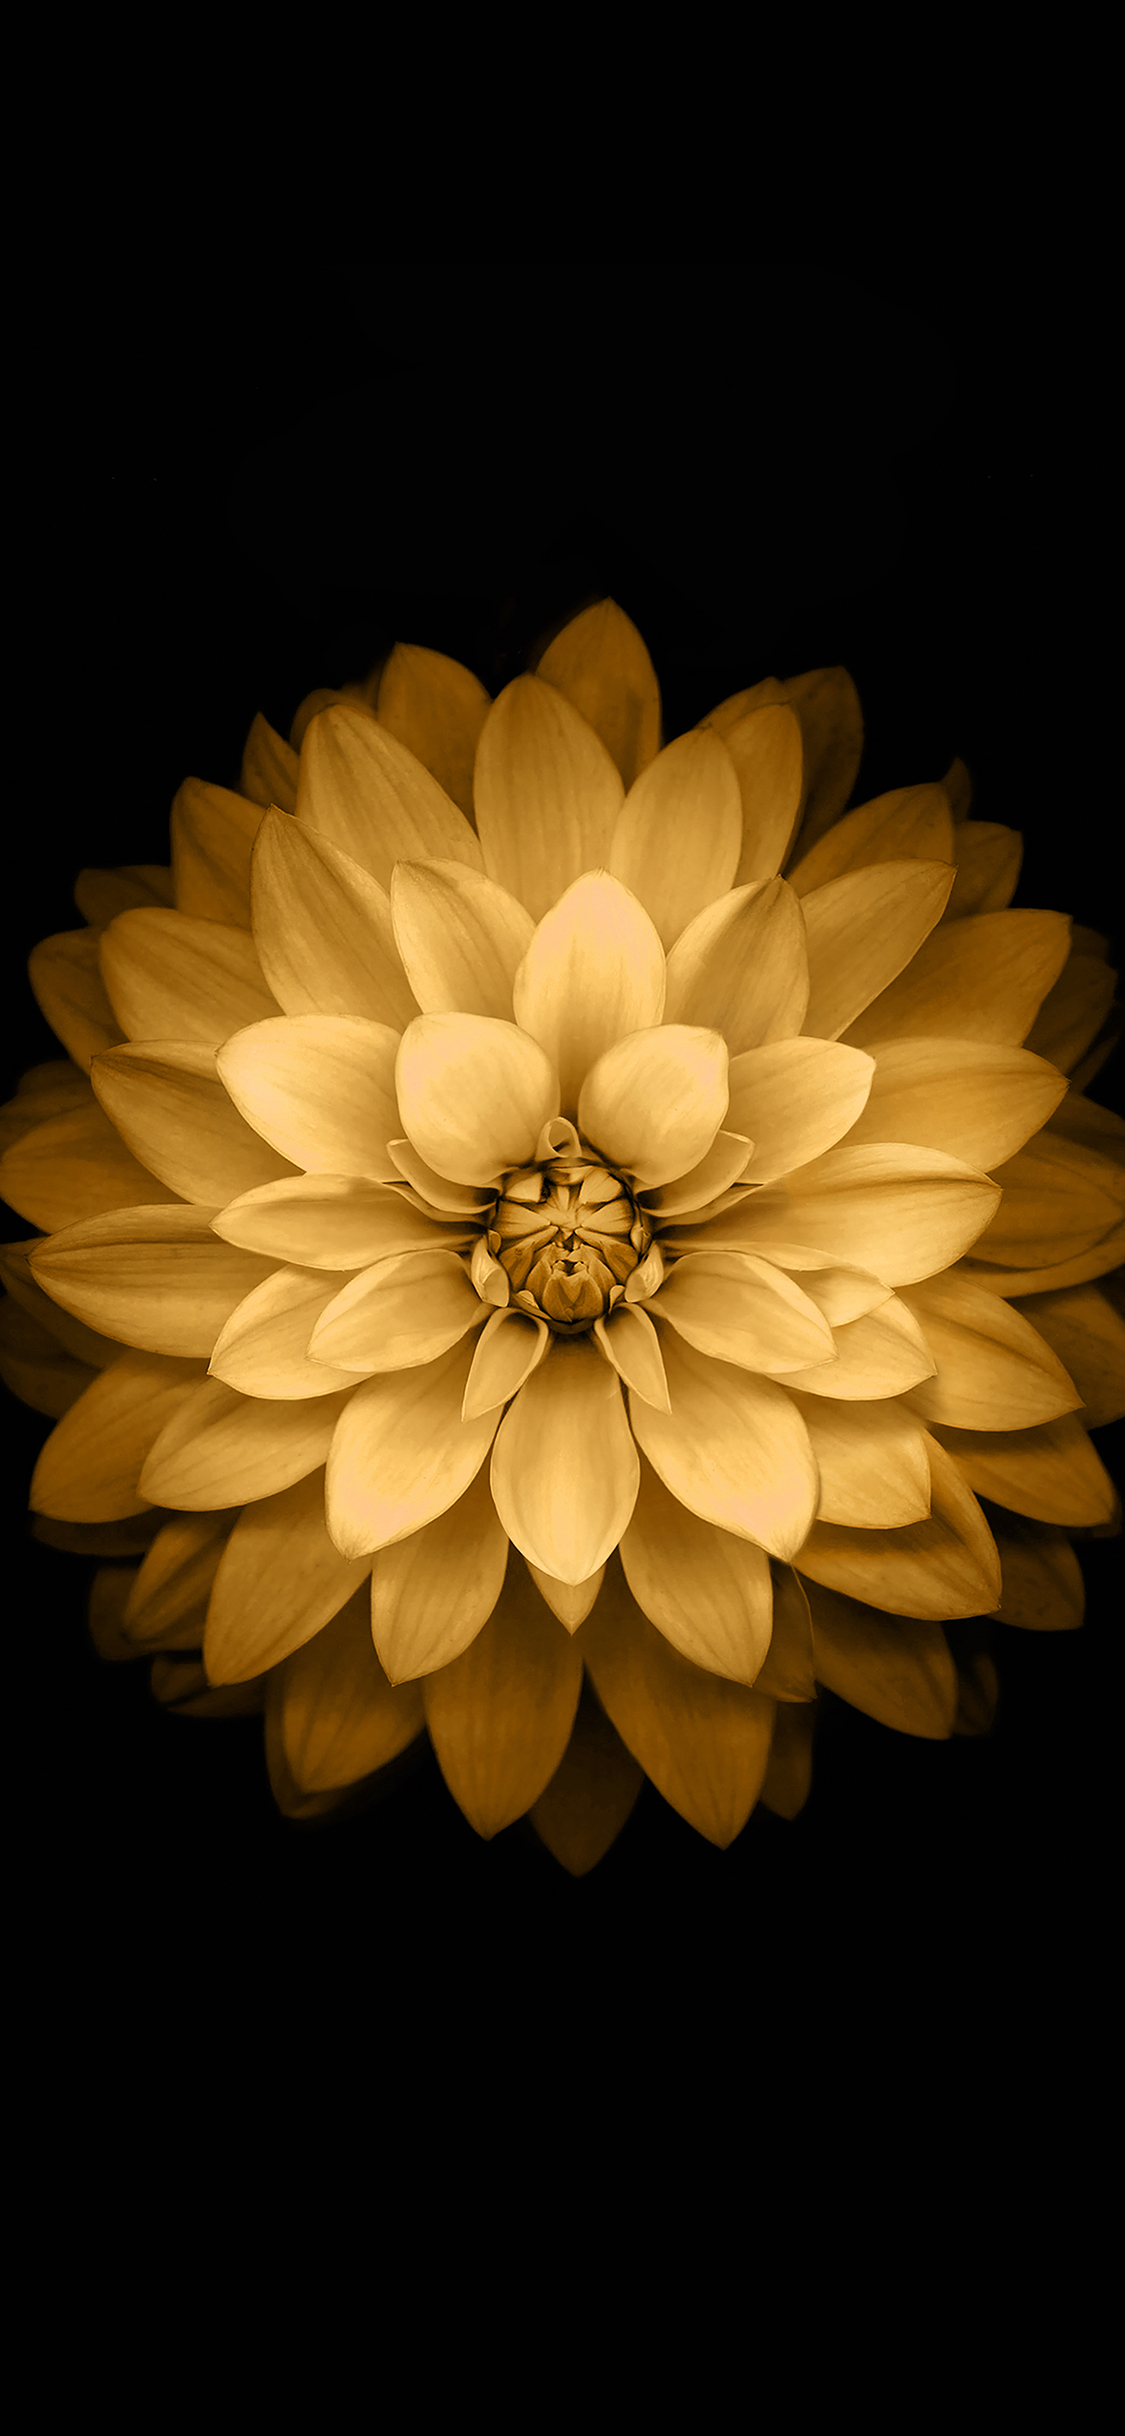 Ad39 Apple Yellow Lotus Iphone6 Plus Ios8 Flower Wallpaper